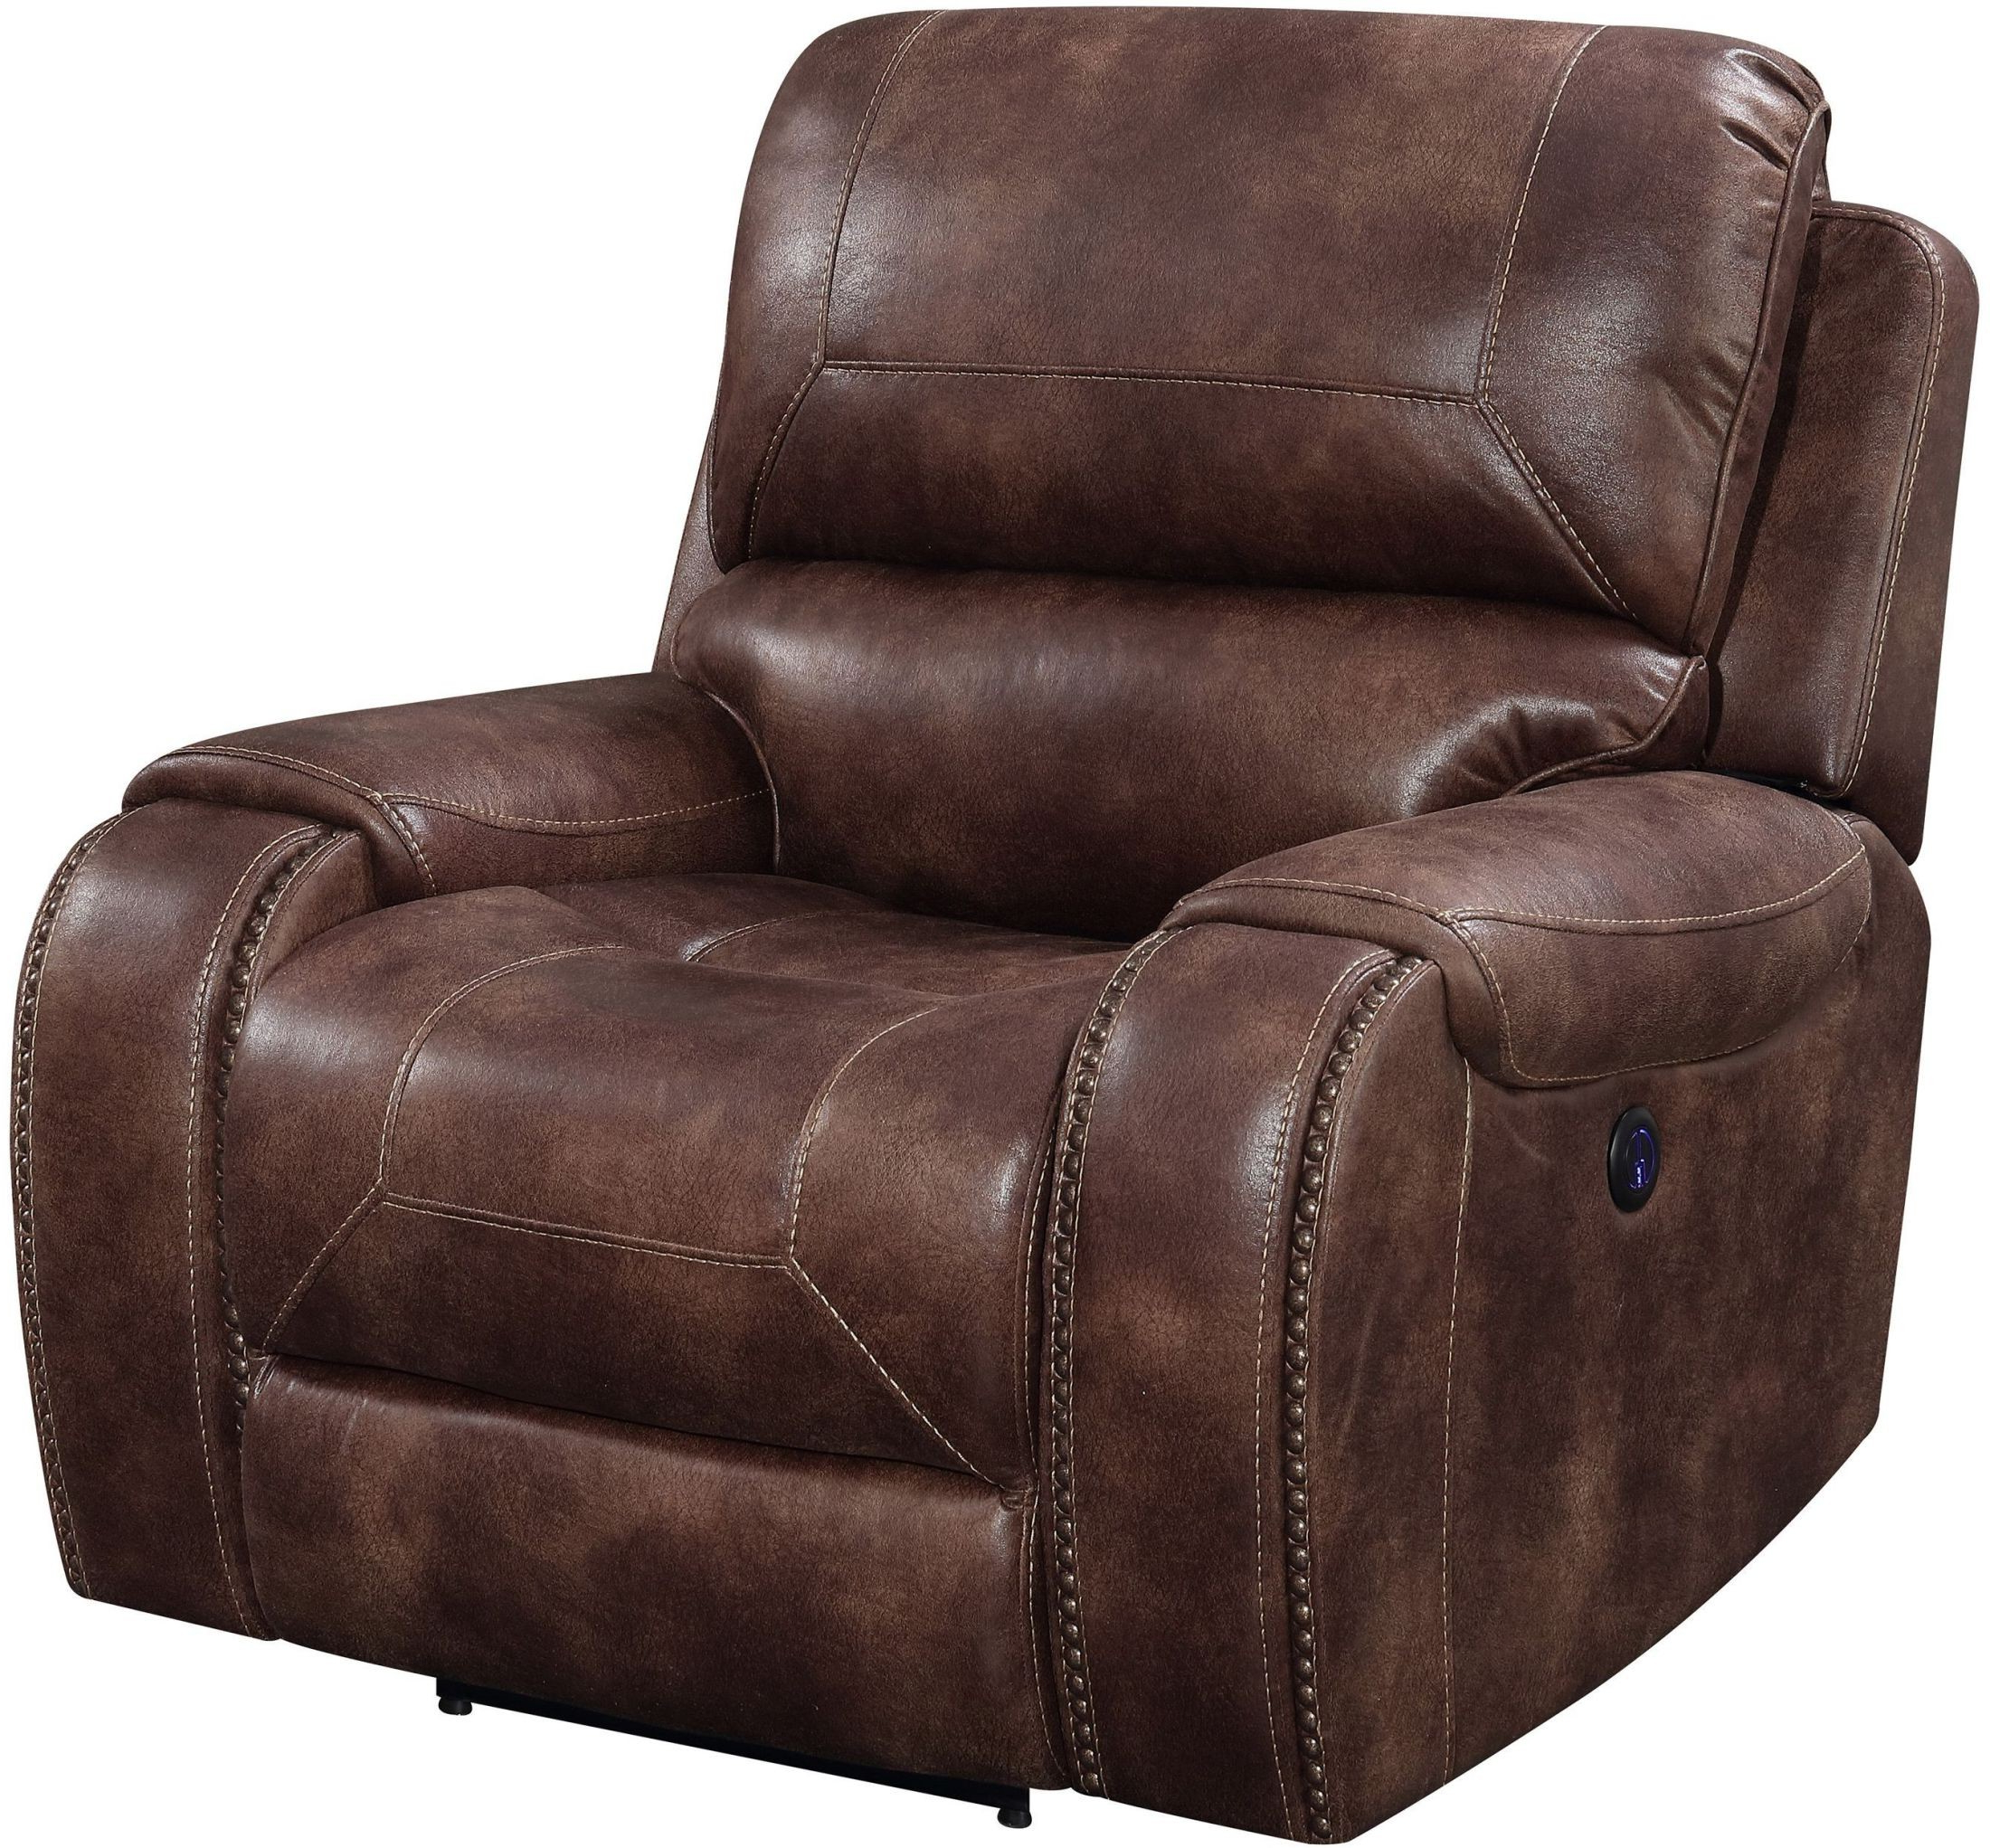 Jennings Waylon Mocha Power Recliner From Prime Resource Pertaining To Famous Waylon 3 Piece Power Reclining Sectionals (View 8 of 20)